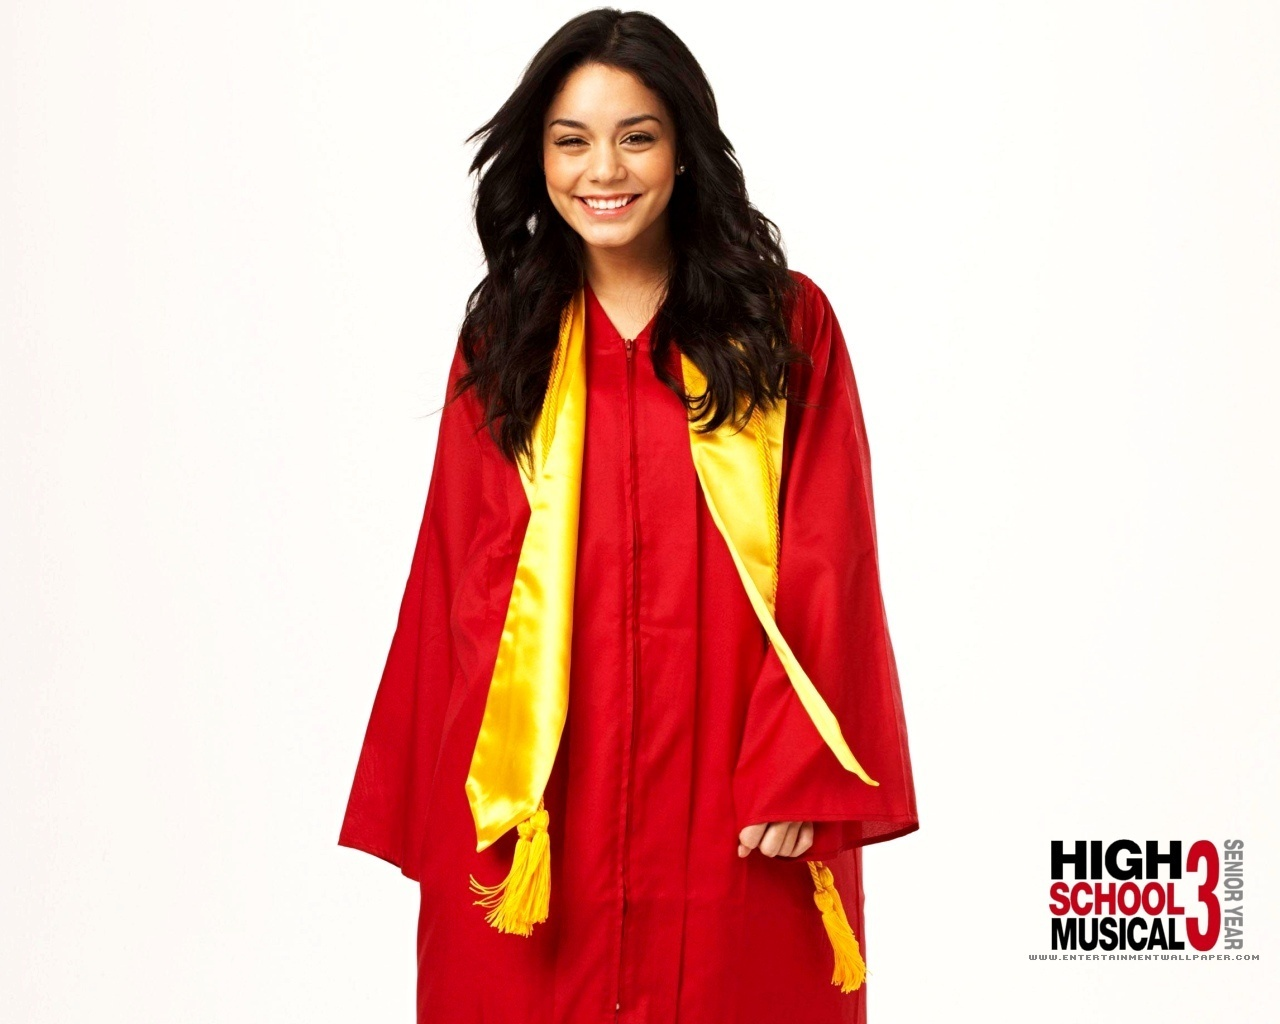 HSm 3 high school musical 3 10937571 1280 1024 Tila Tequila